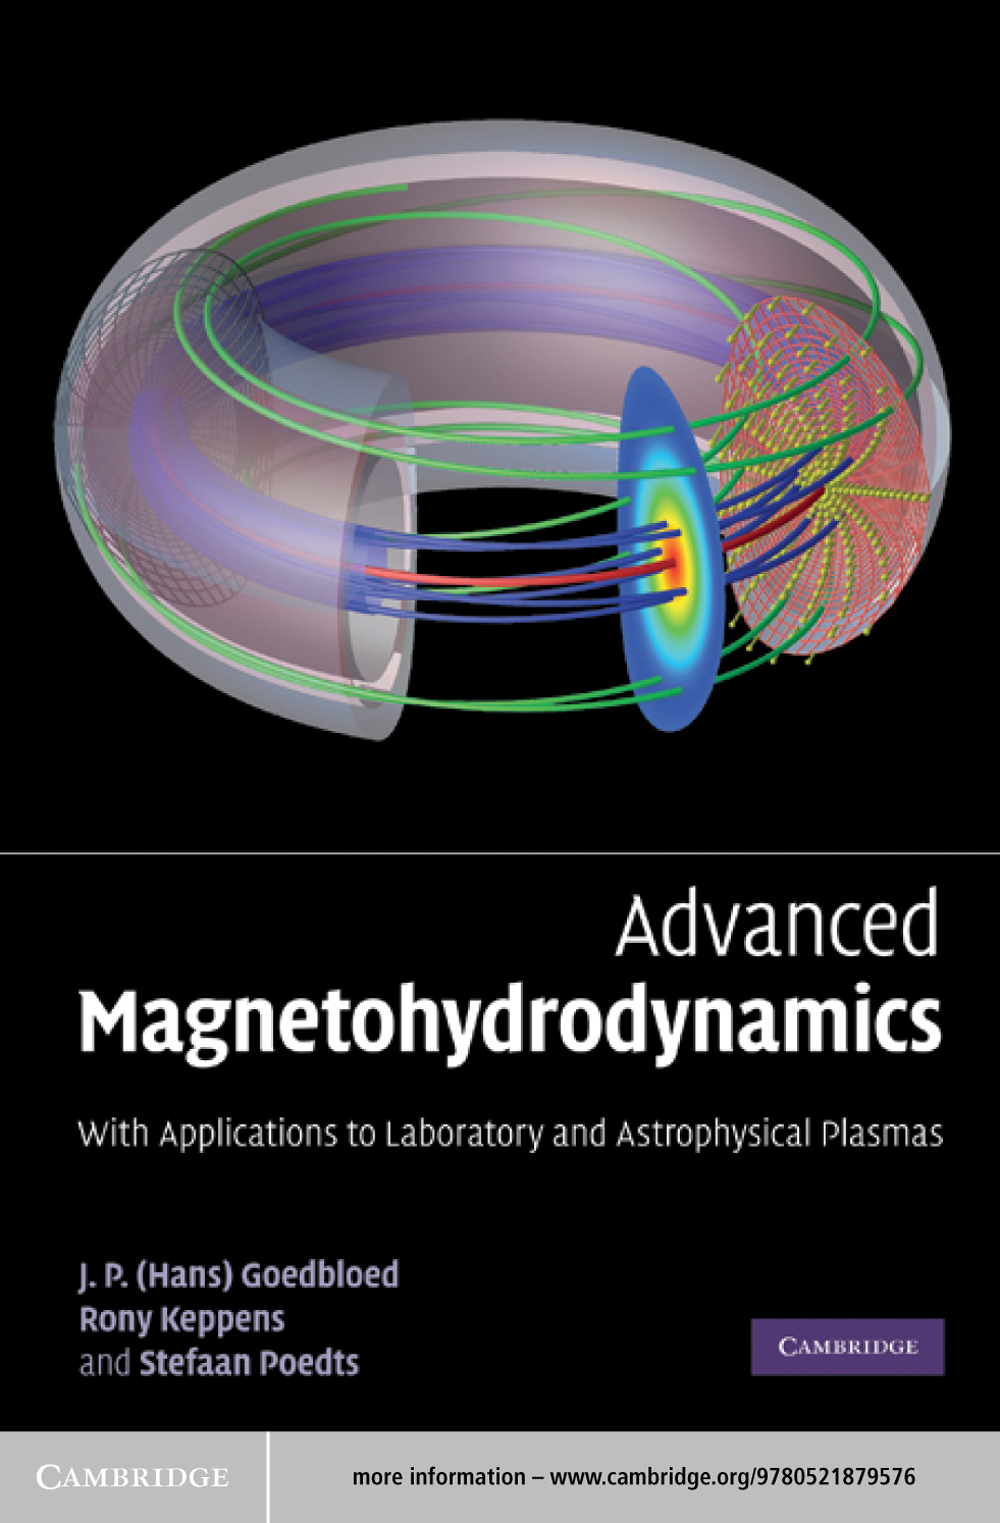 Advanced Magnetohydrodynamics With Applications to Laboratory and Astrophysical Plasmas